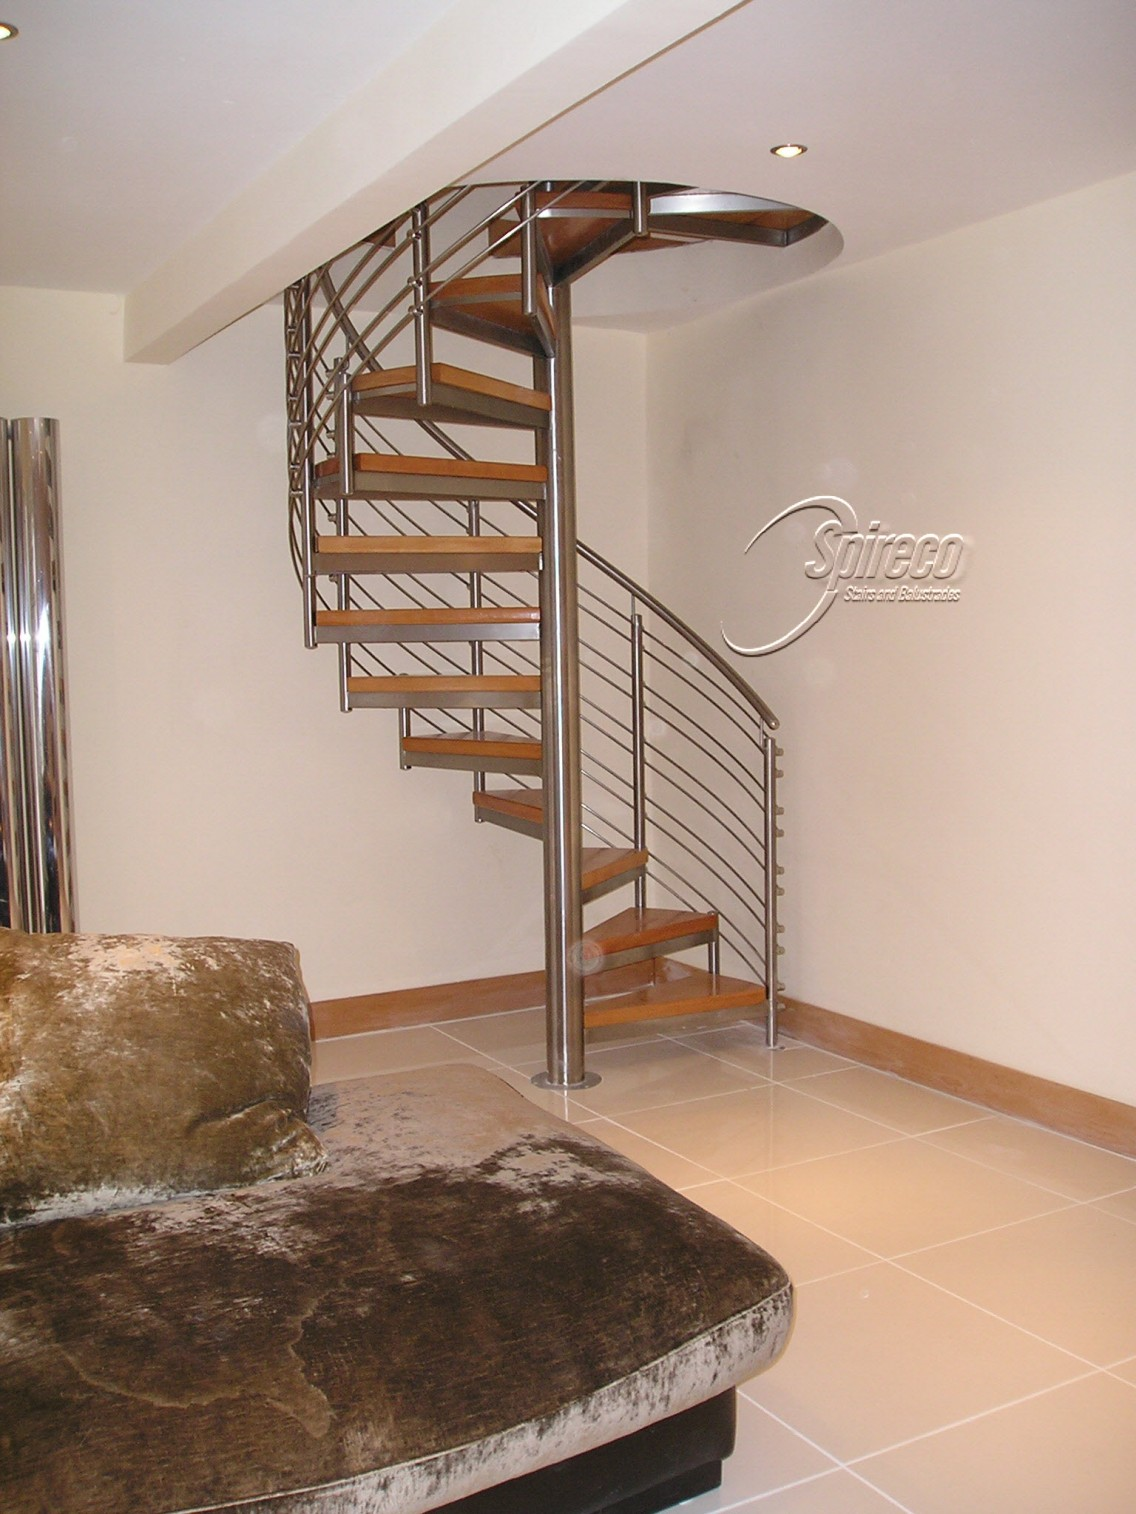 Feature Spiral Stairs Spireco Spiral Stairs